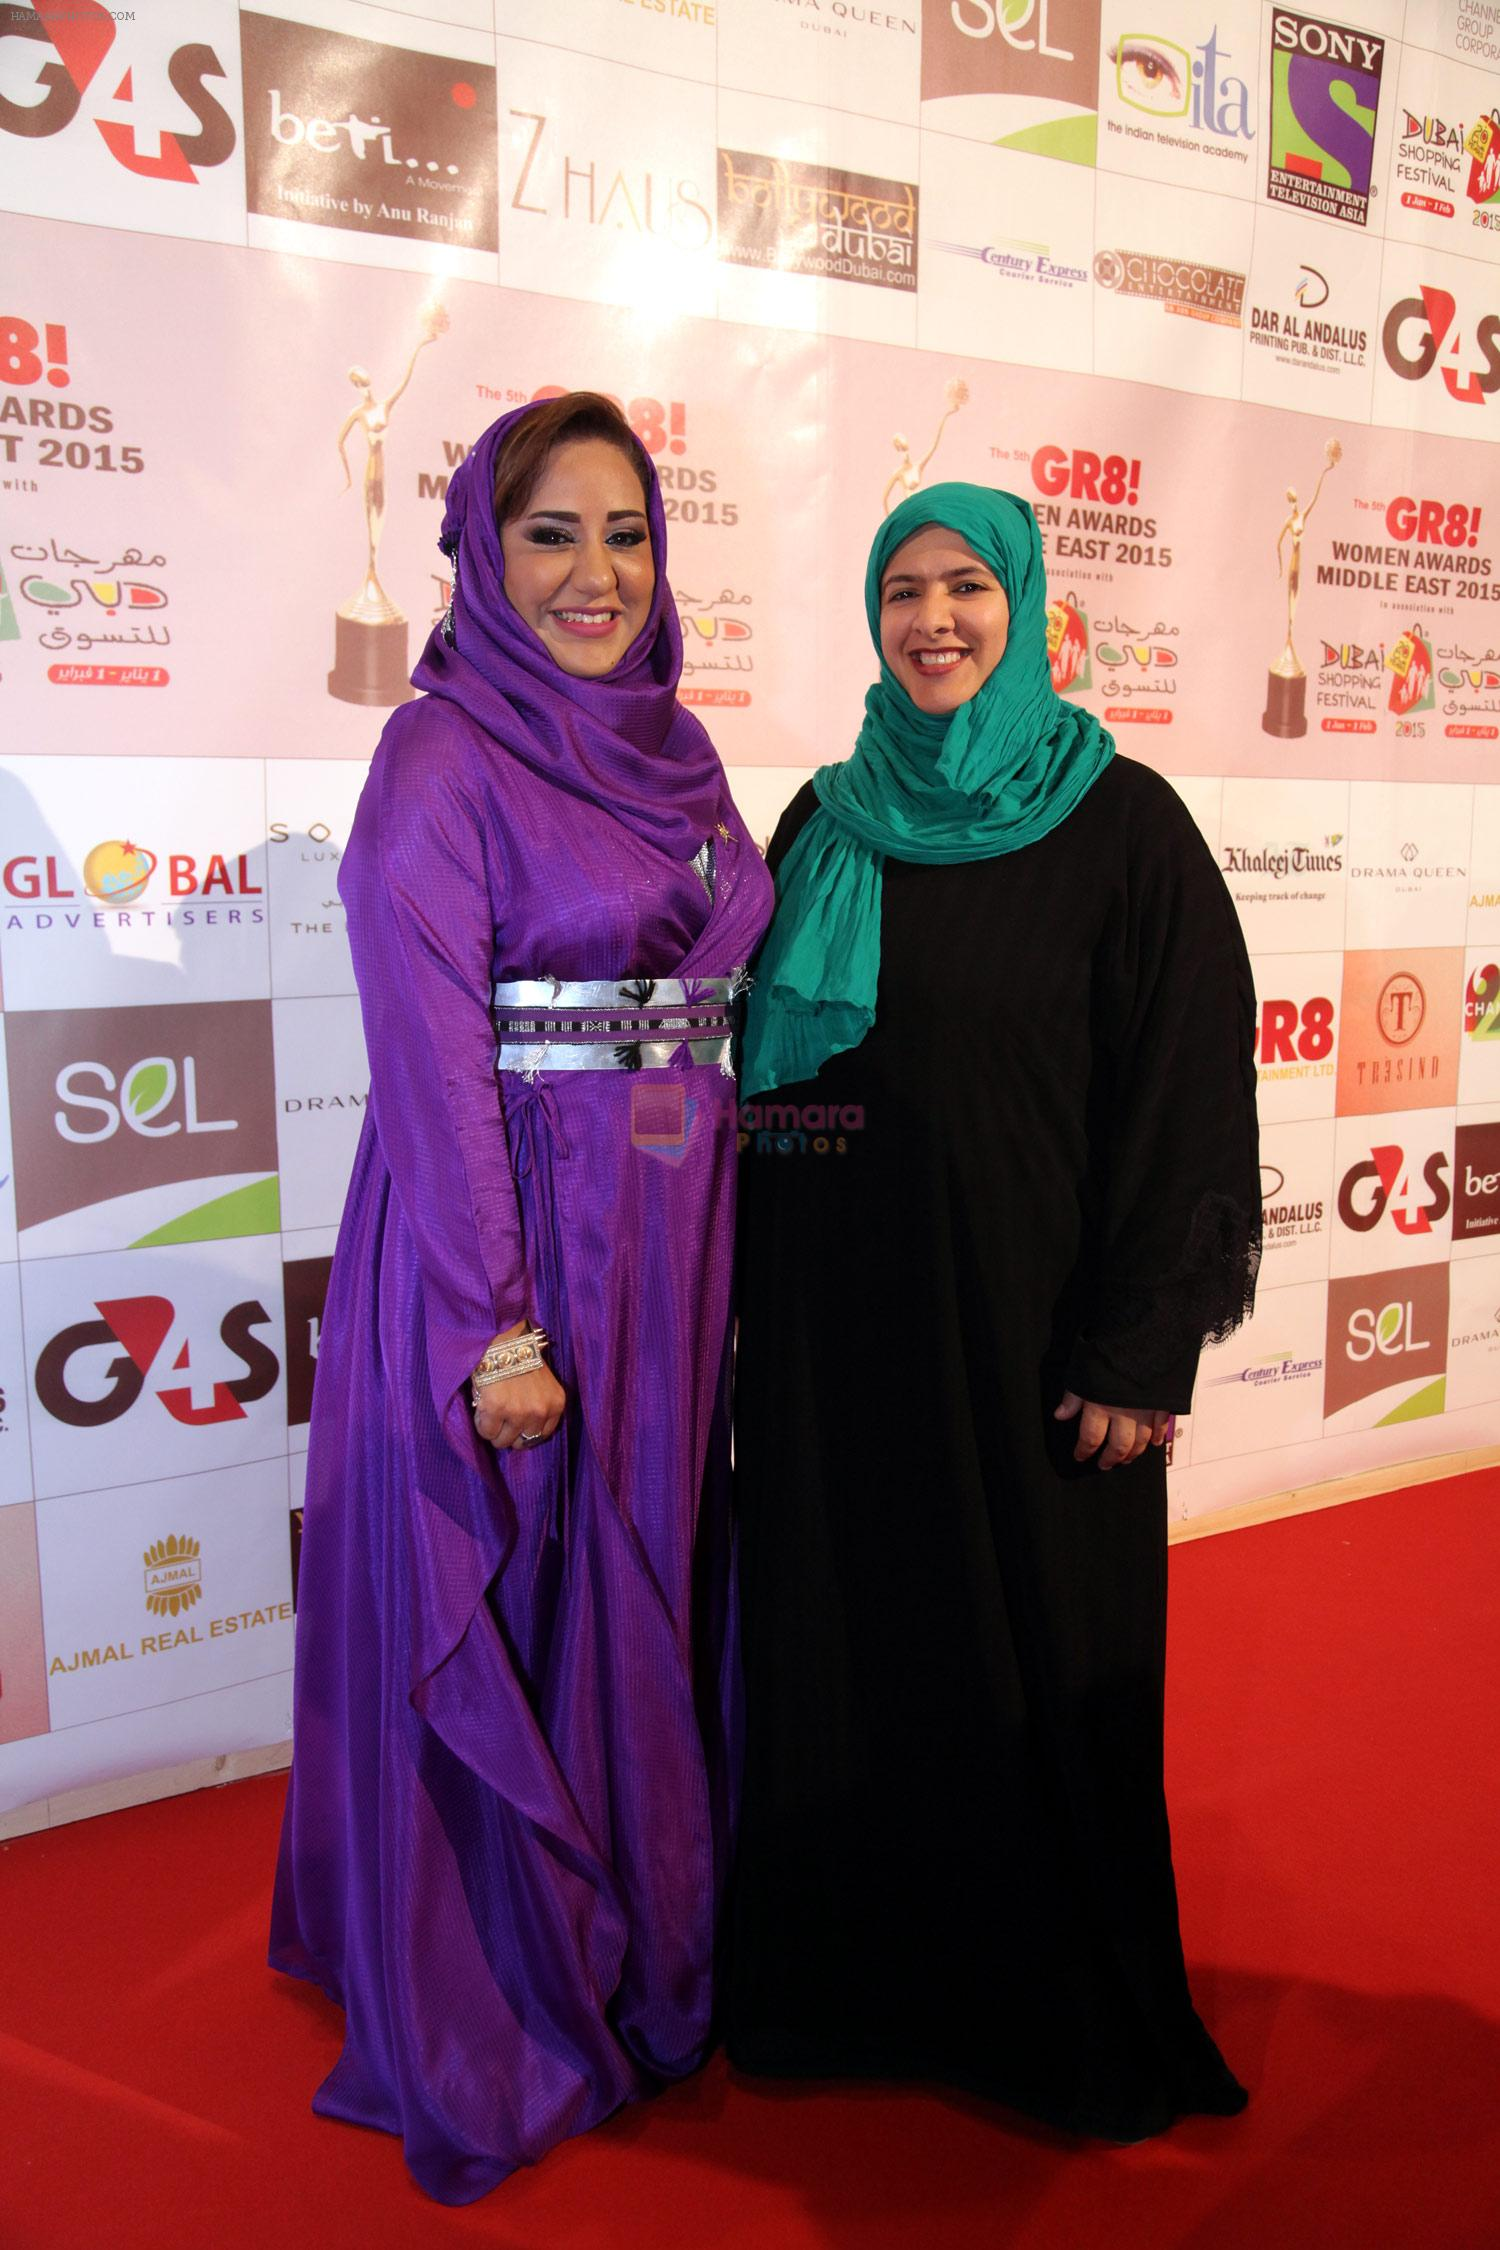 at the Red Carpet of THE GR8! Women Awards-ME 2015, held on the 12th January 2015 at Sofitel, Palms, Dubai